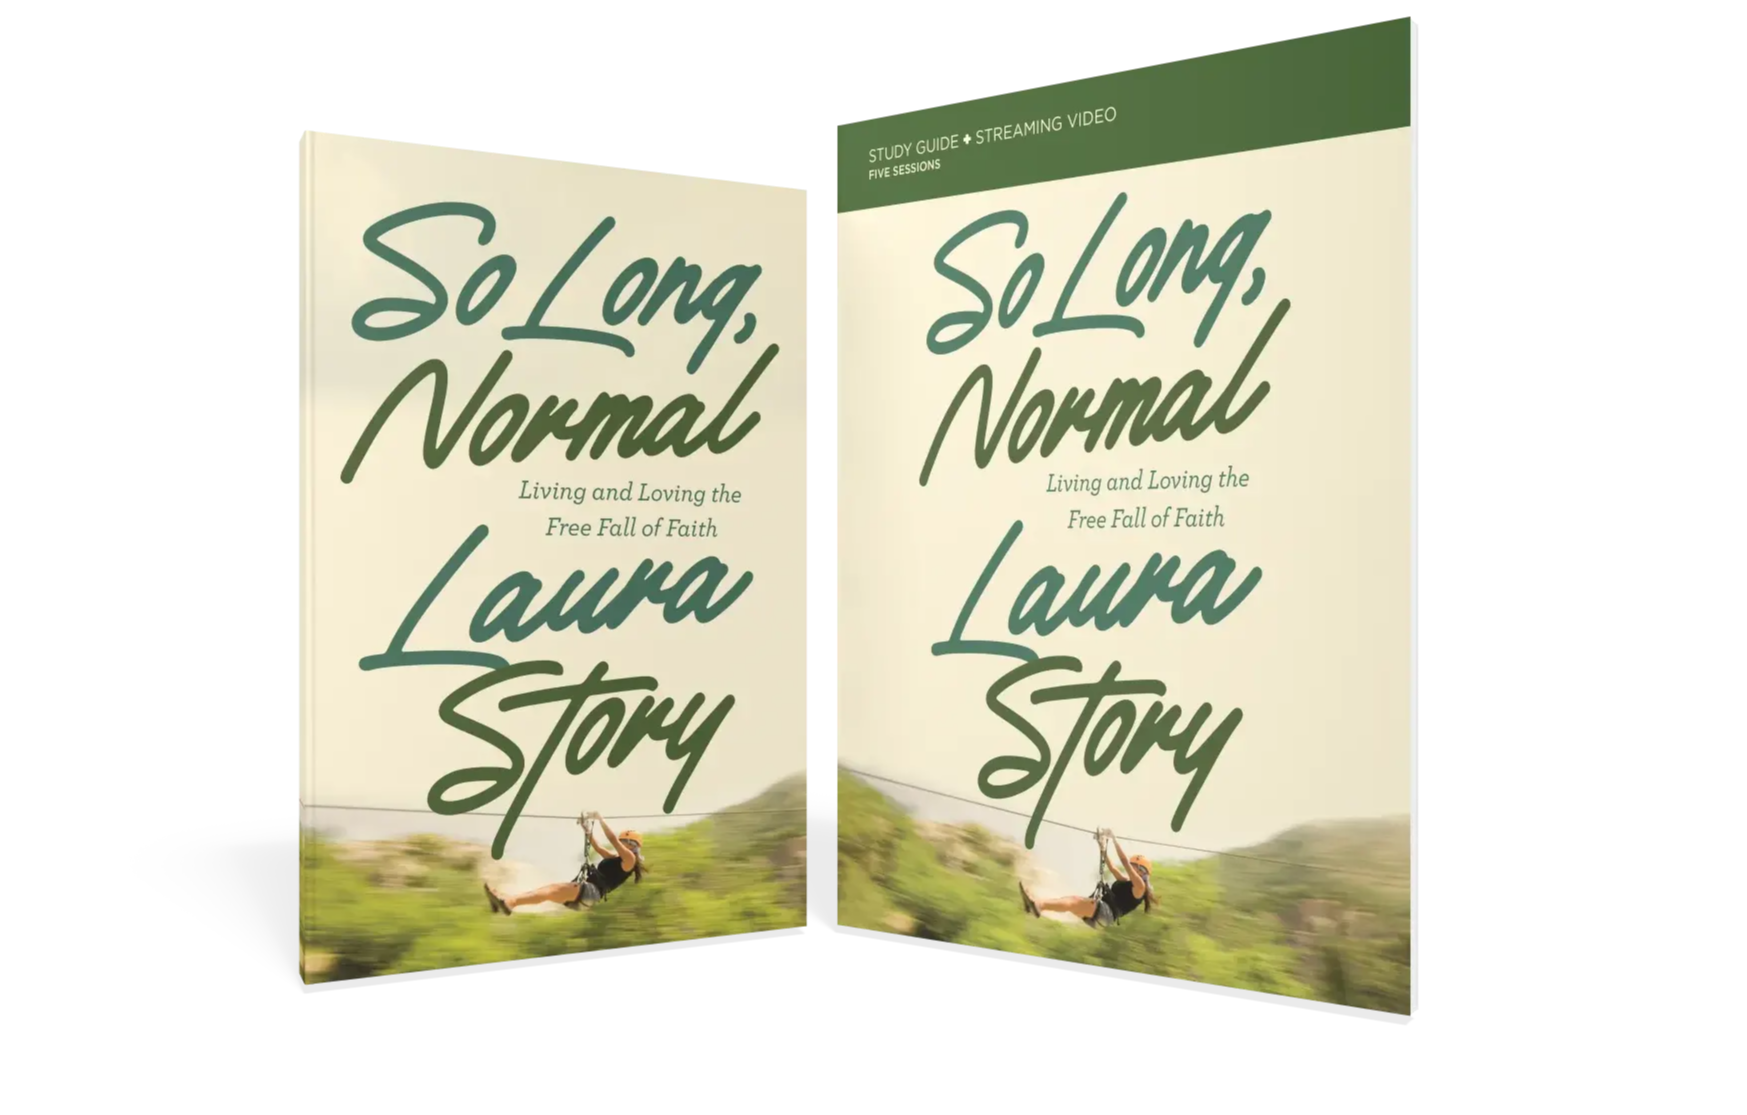 So Long, Normal by Laura Story